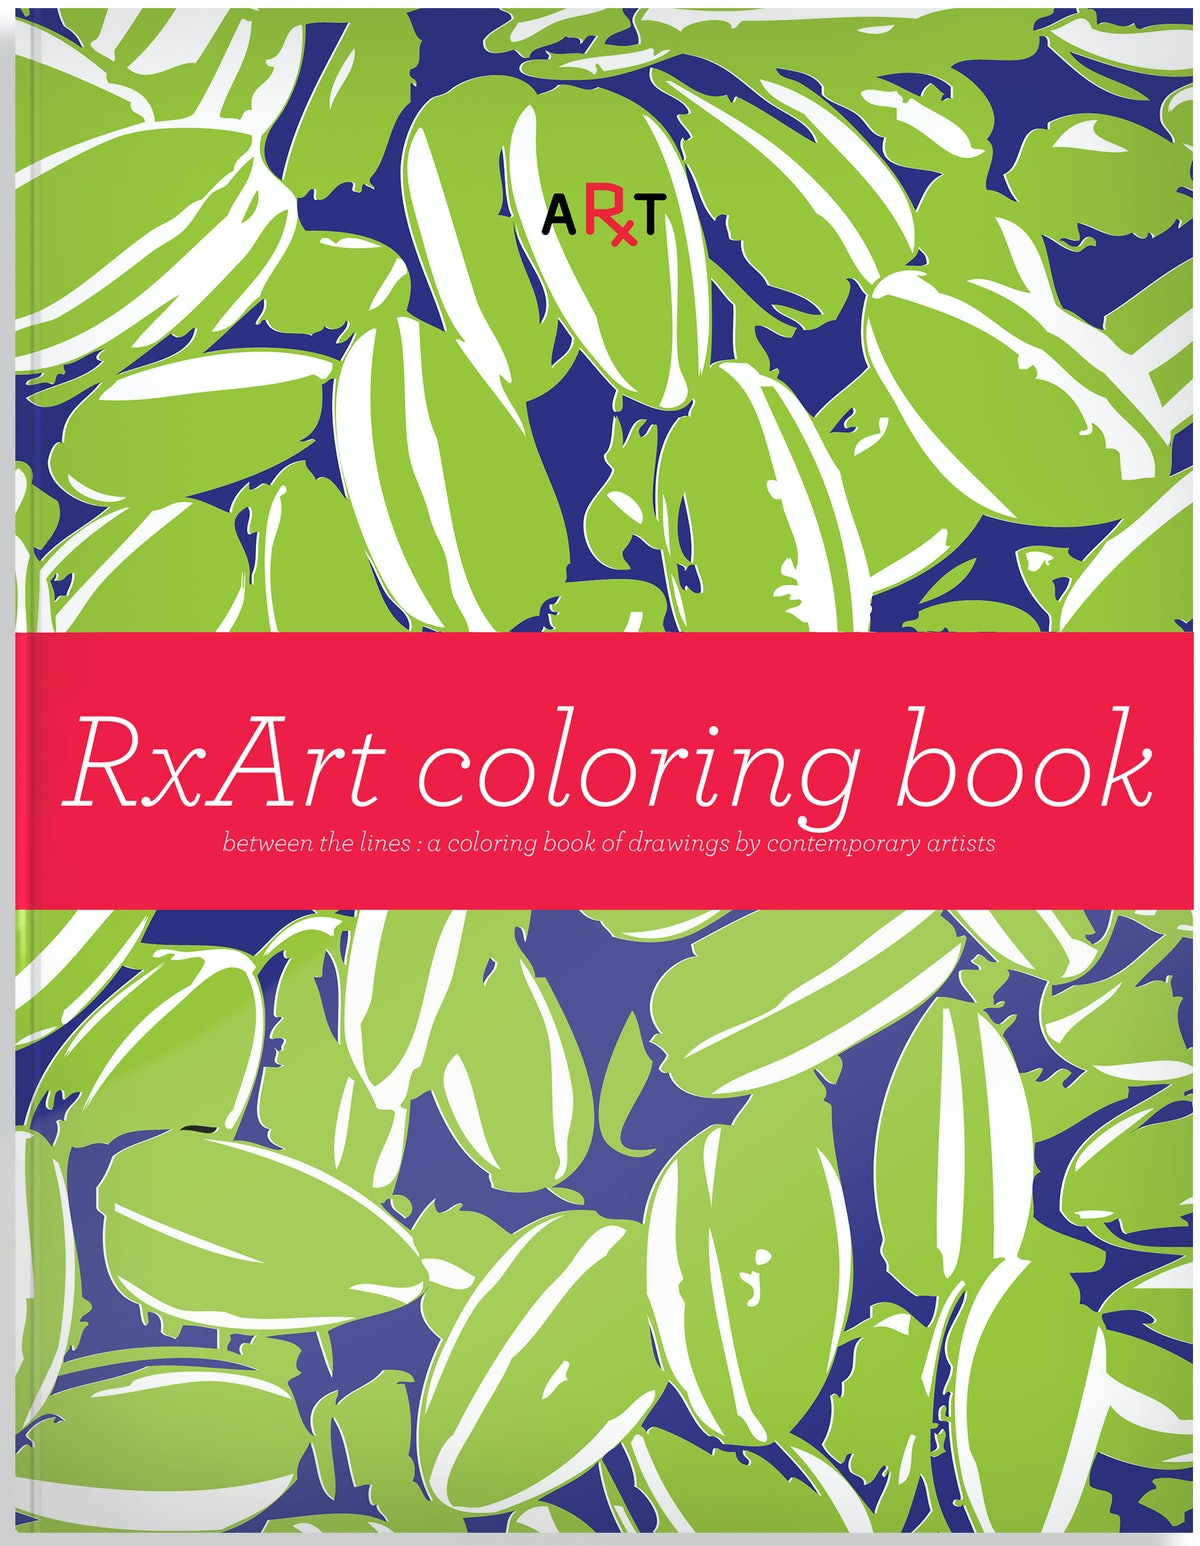 The RxArt Coloring Book Volume IV